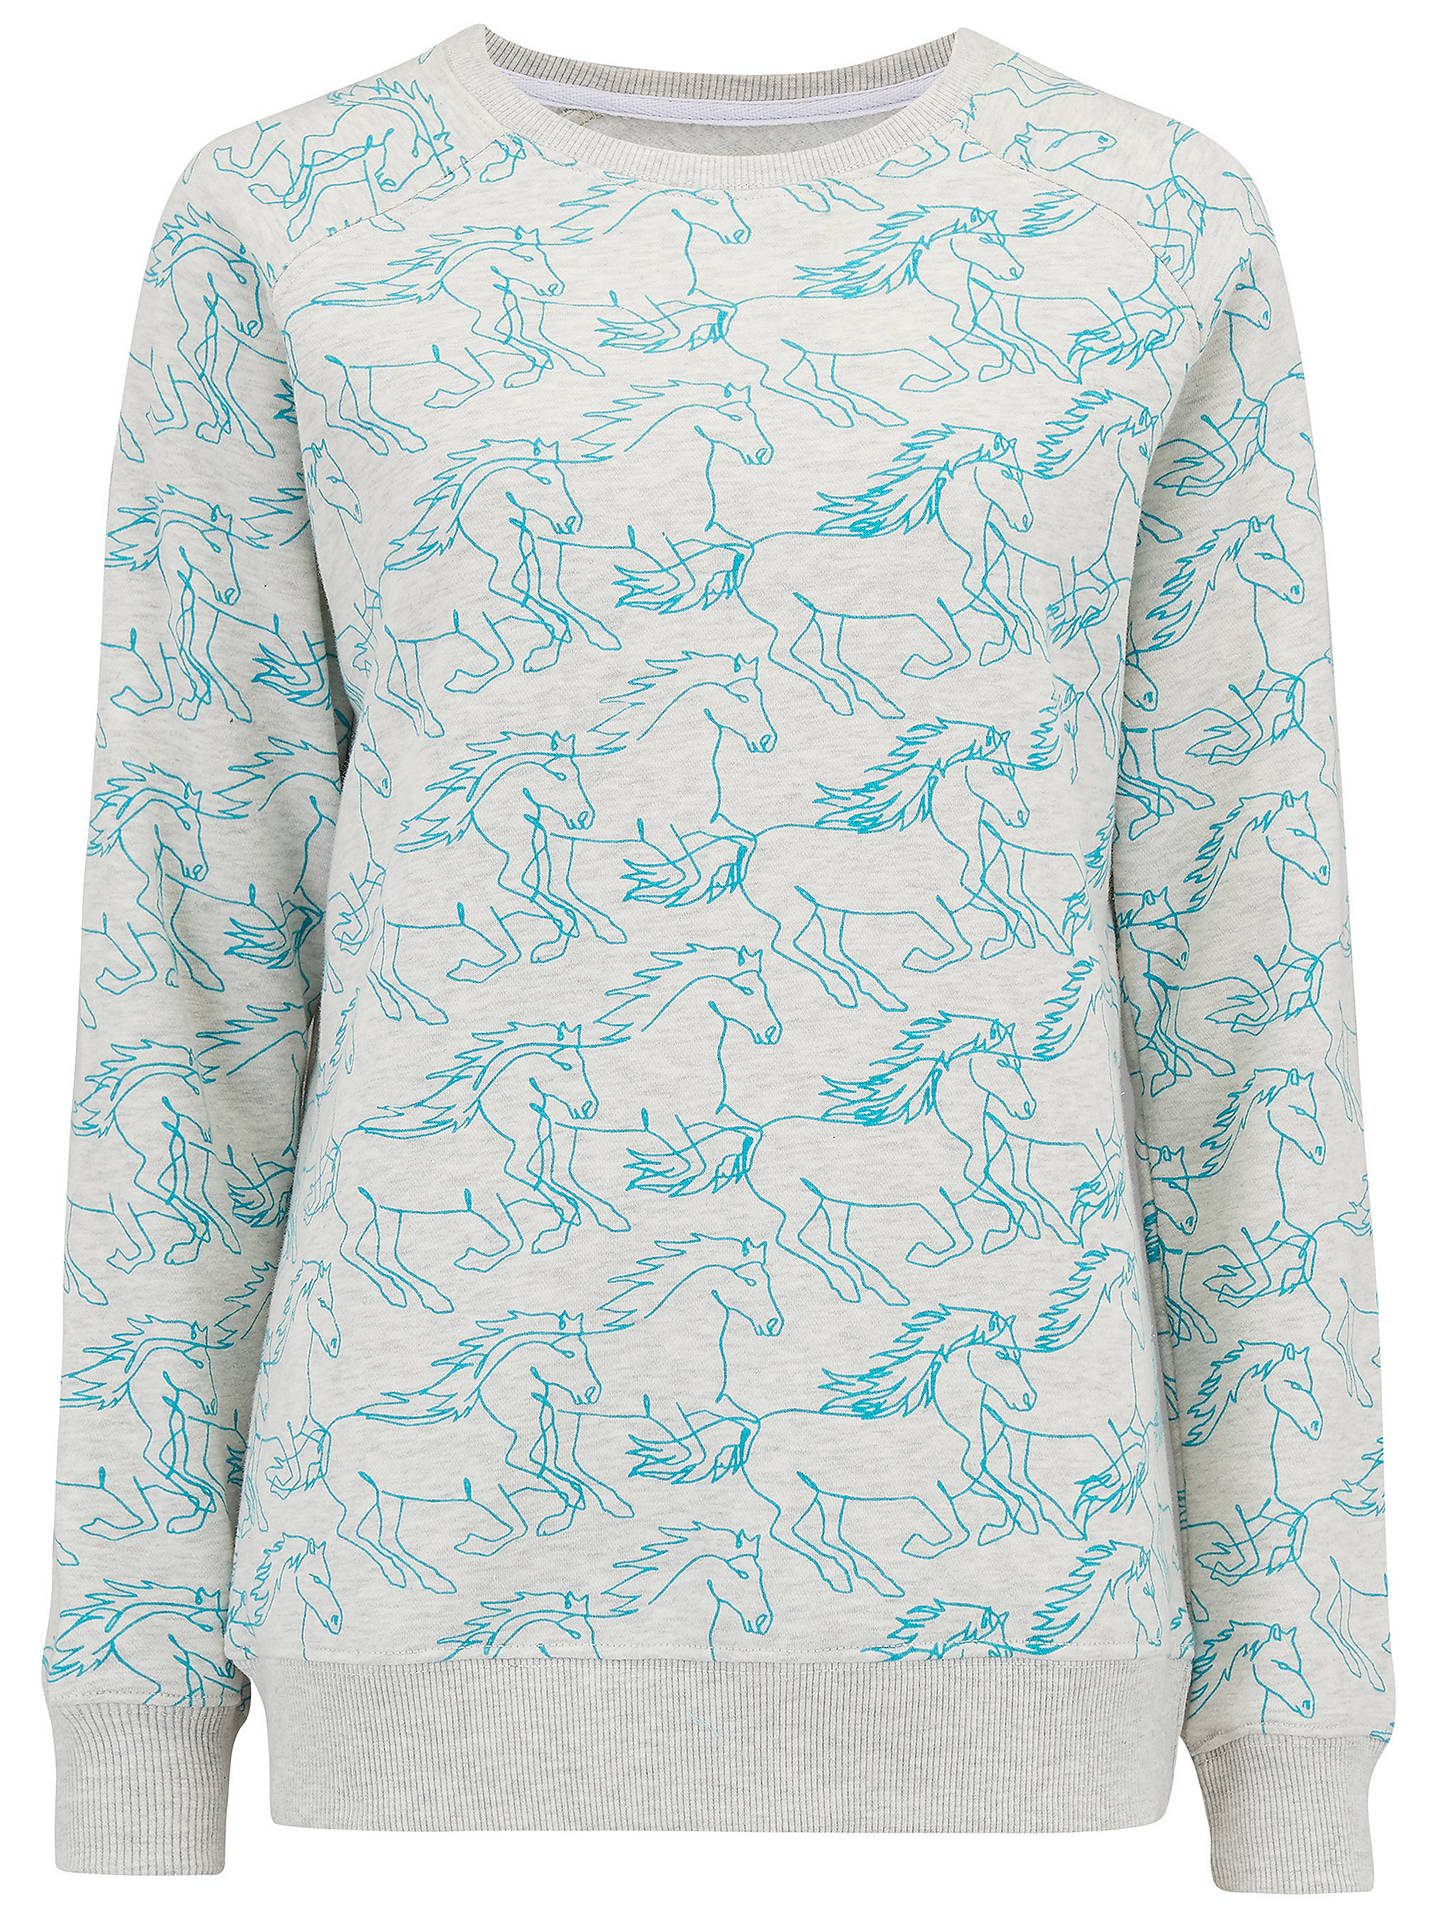 BuySugarhill Brighton Laurie Running With Horses Sweatshirt, Oatmeal/Teal, 10 Online at johnlewis.com